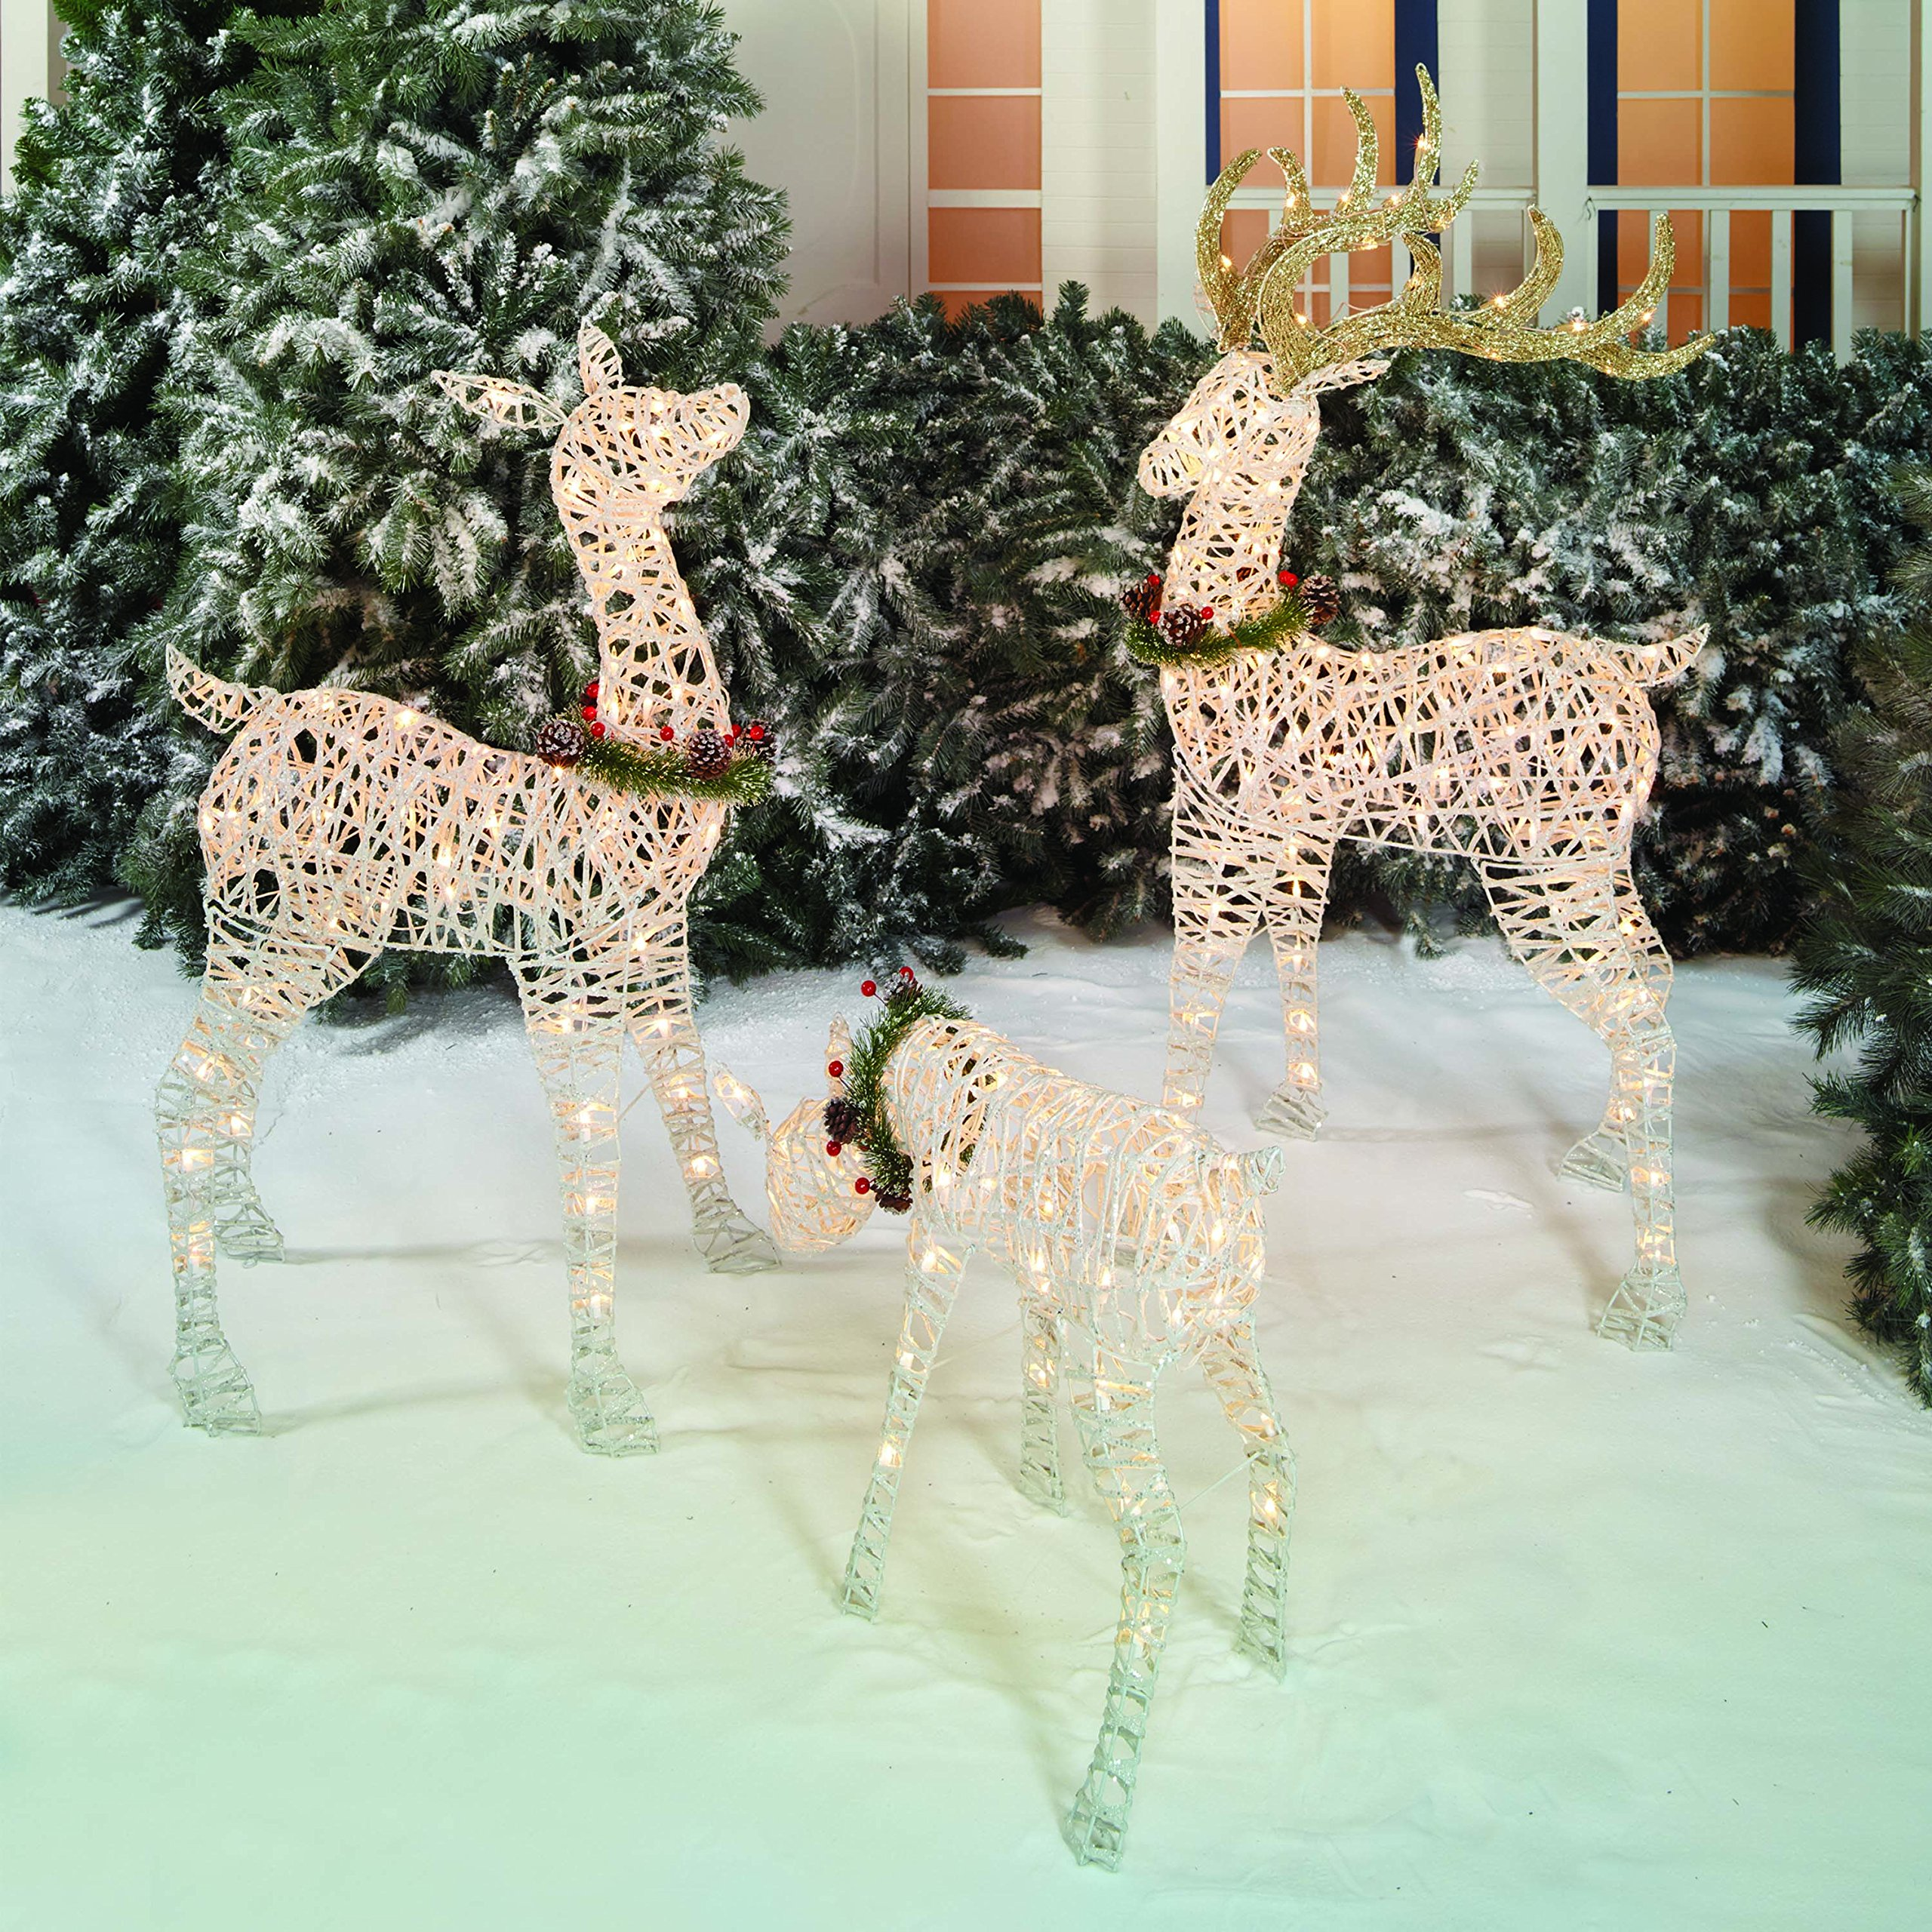 outdoor christmas reindeer family 3 set 220 lights 52 buck 44 doe 28 - Outside Reindeer Christmas Decorations